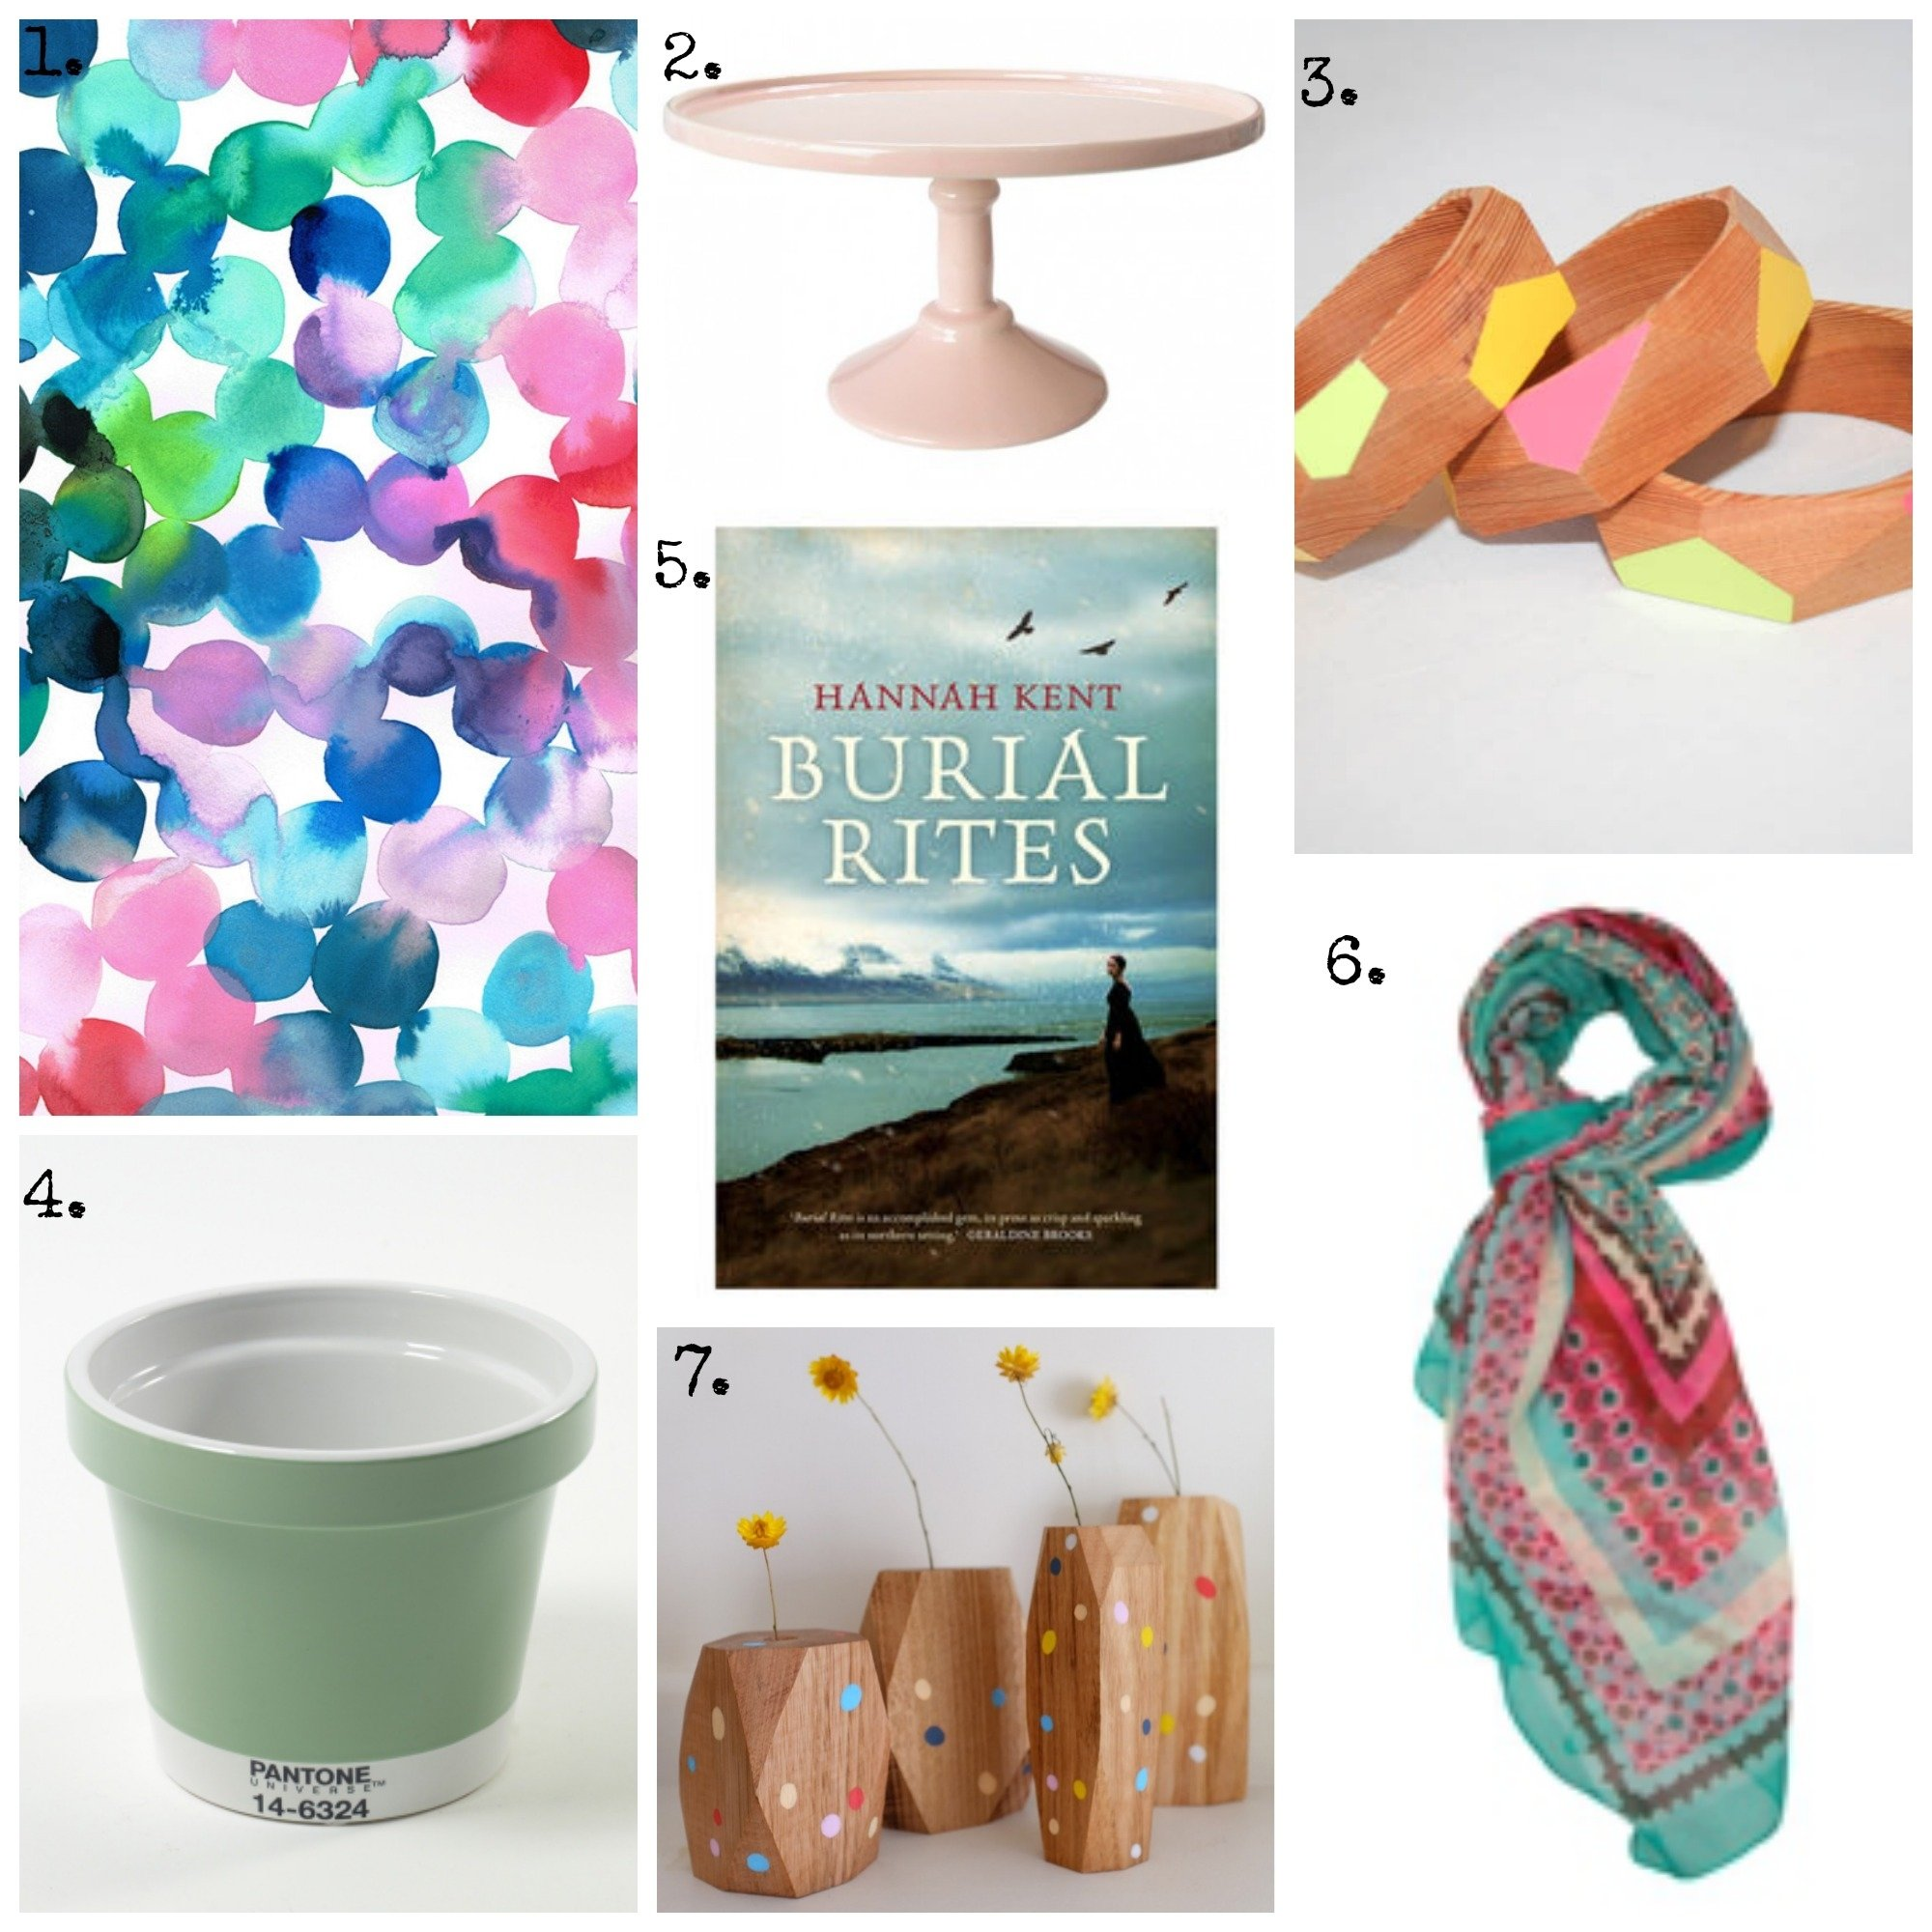 10 Best Gift Ideas For Her Birthday the top 7 gorgeous gift ideas for women style shenanigans 2020